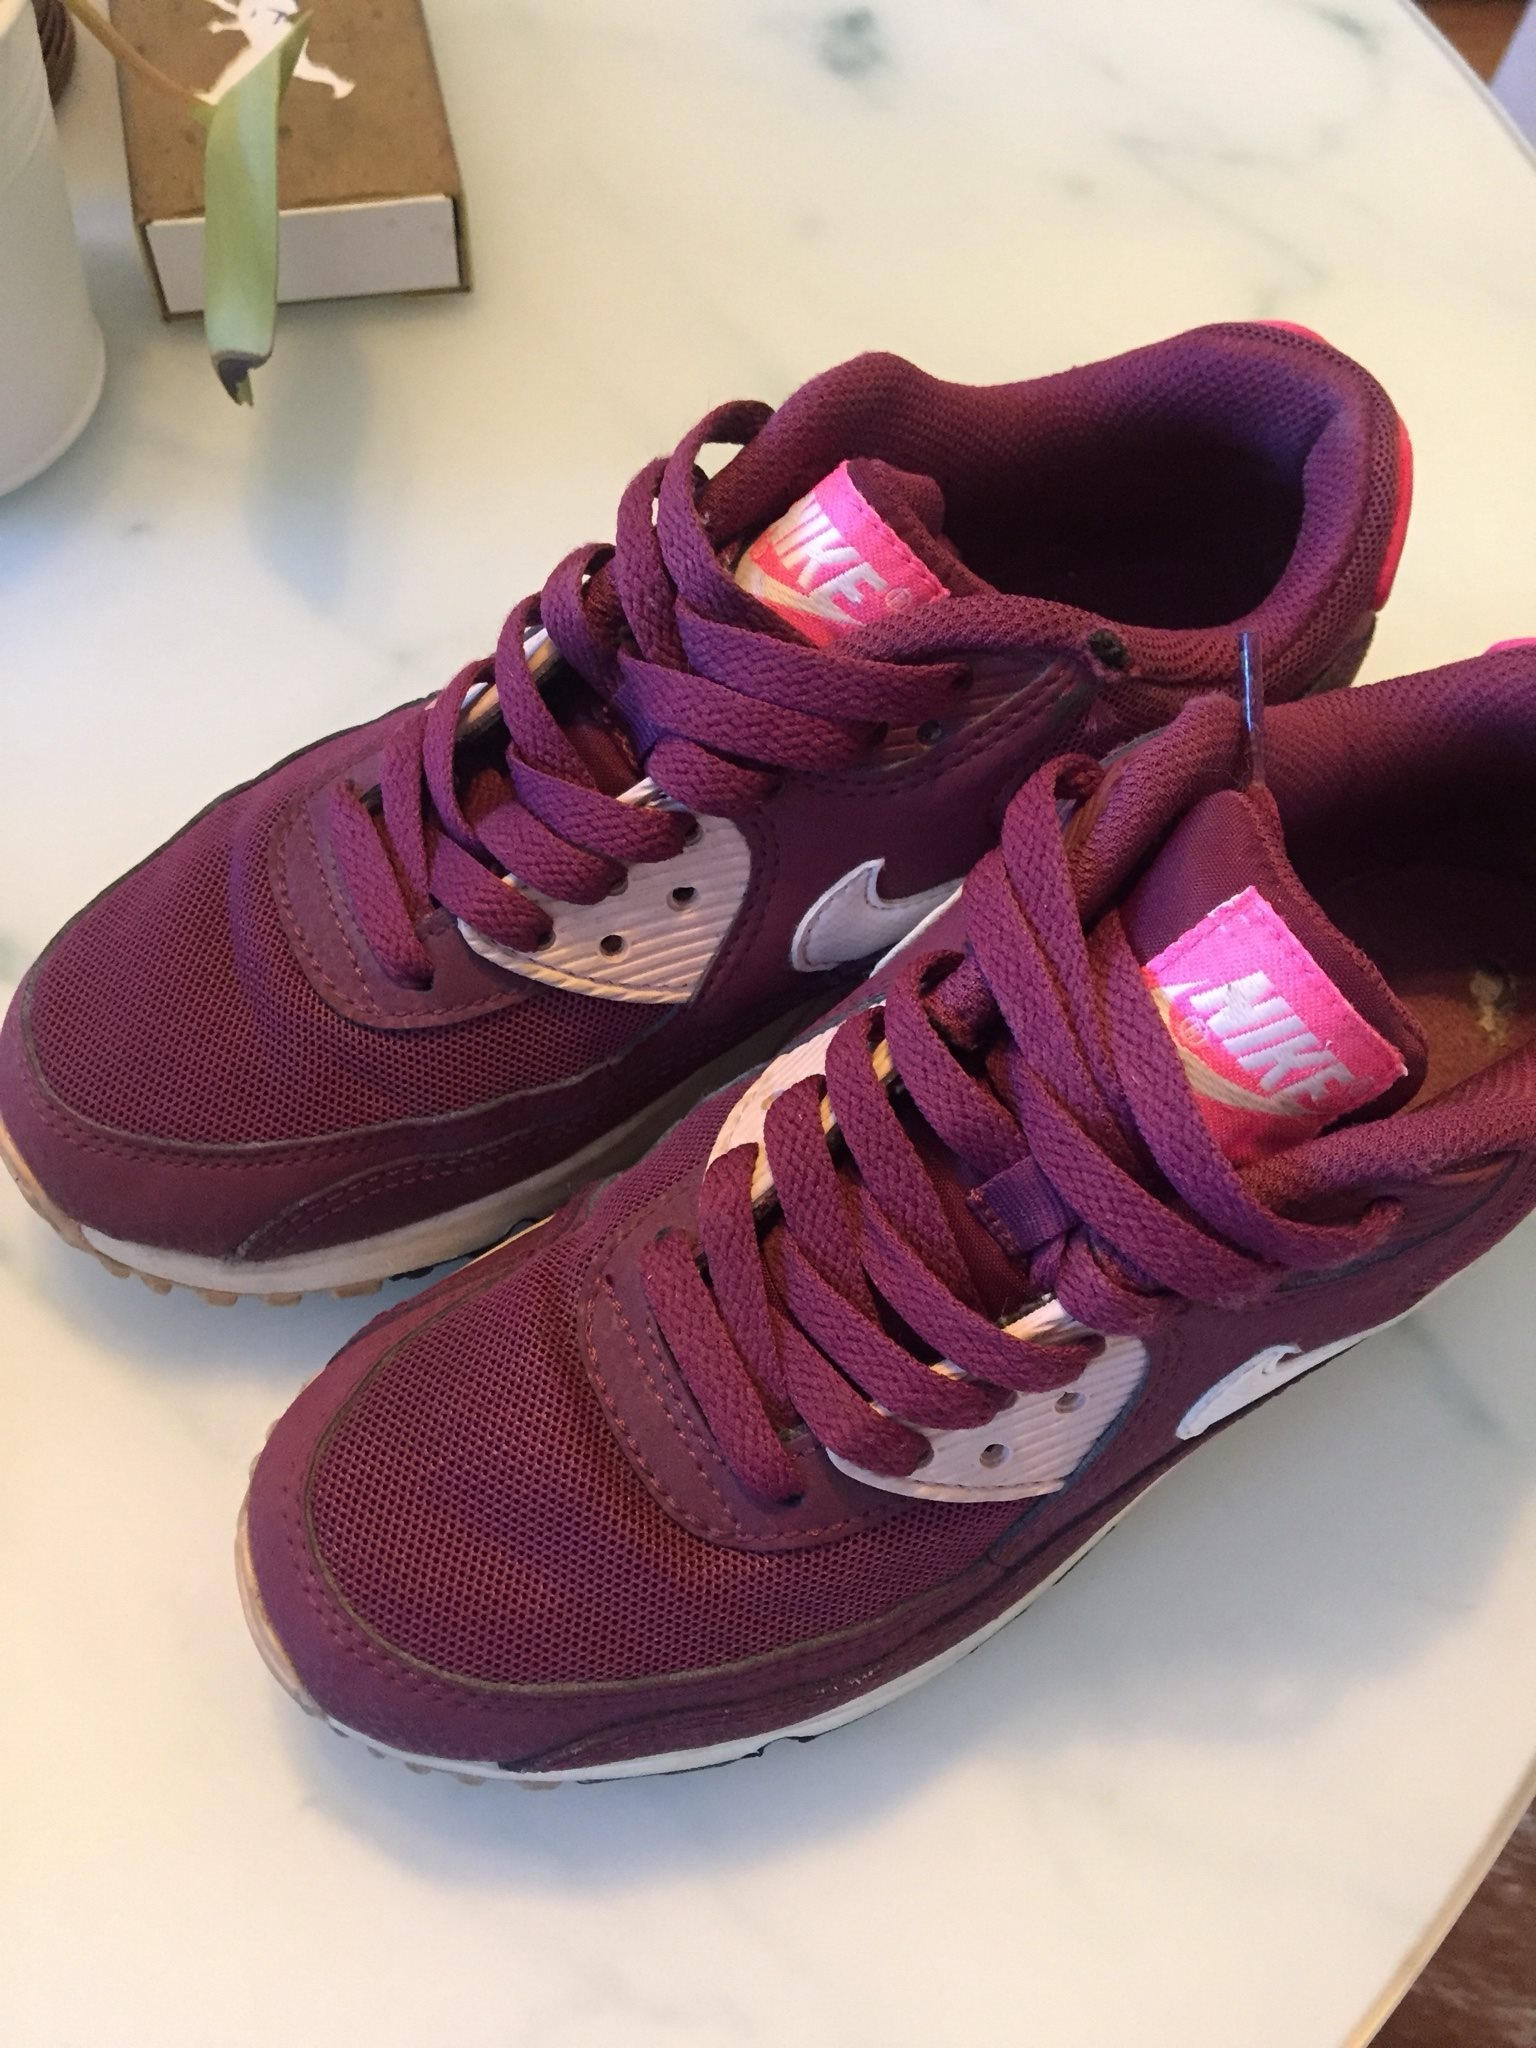 newest dc8d6 04f76 netherlands höst vinter 2018 nike air max 90 ultra 2.0 sunset glow sunset  glow a973b 3eda3  discount code for nike air max storlek 365 1eb4d 35e22